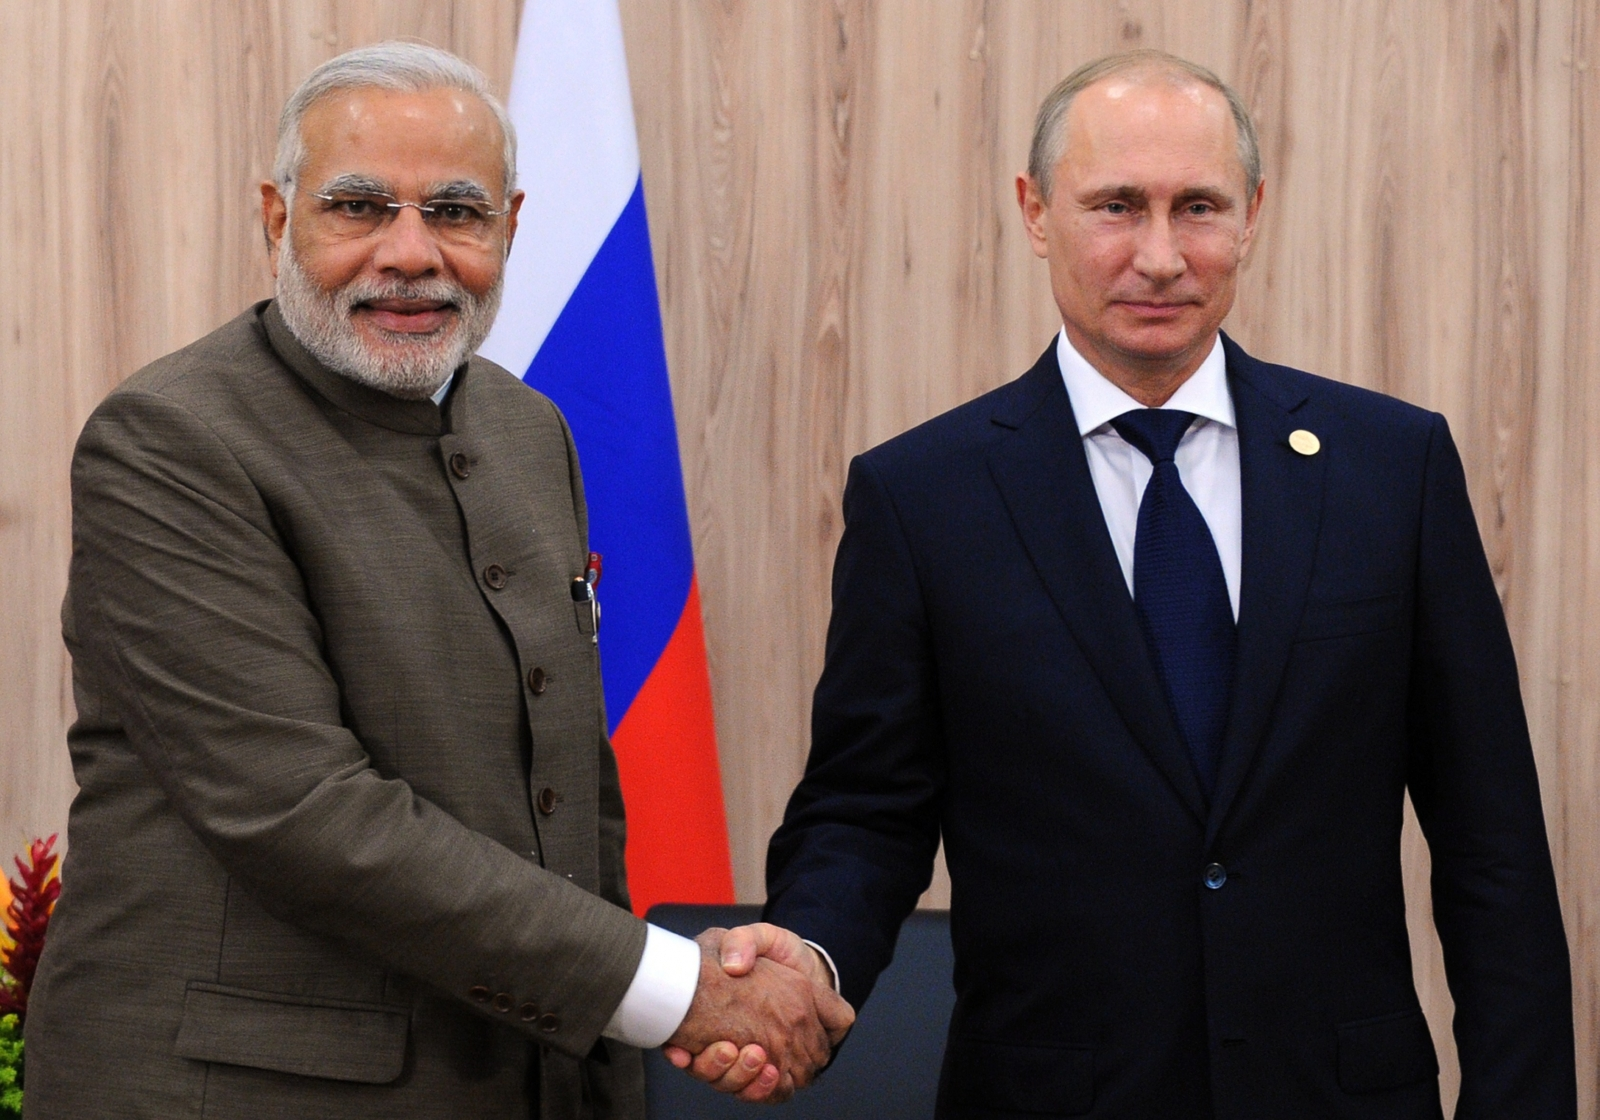 India-Russia bilateral summit as Vladimir Putin set to visit New Delhi